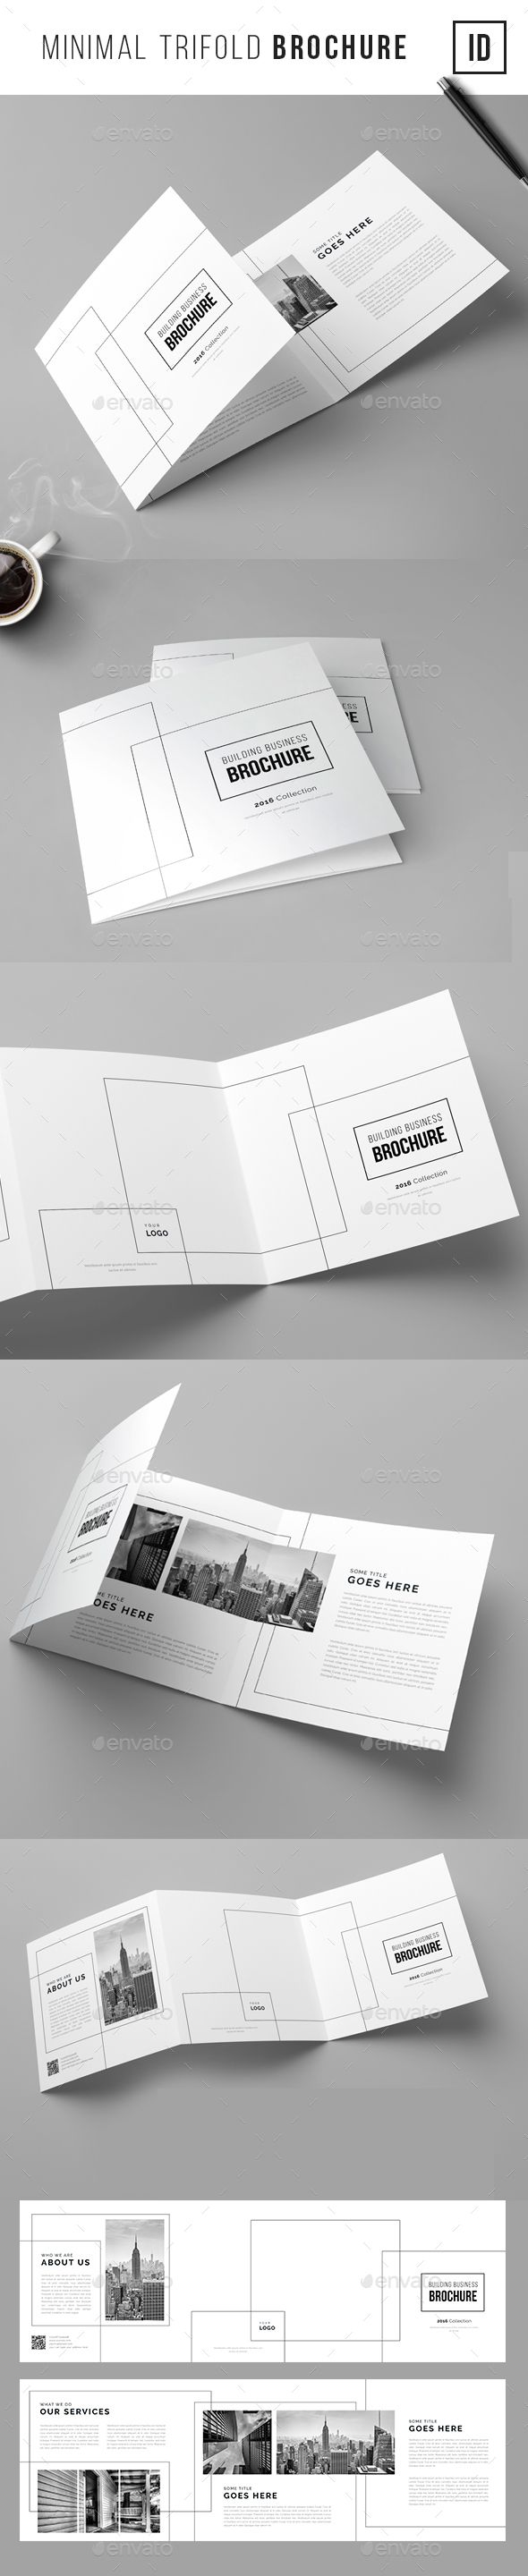 Minimal Trifold Brochure  #professional #real estate #simple #square #trifold…